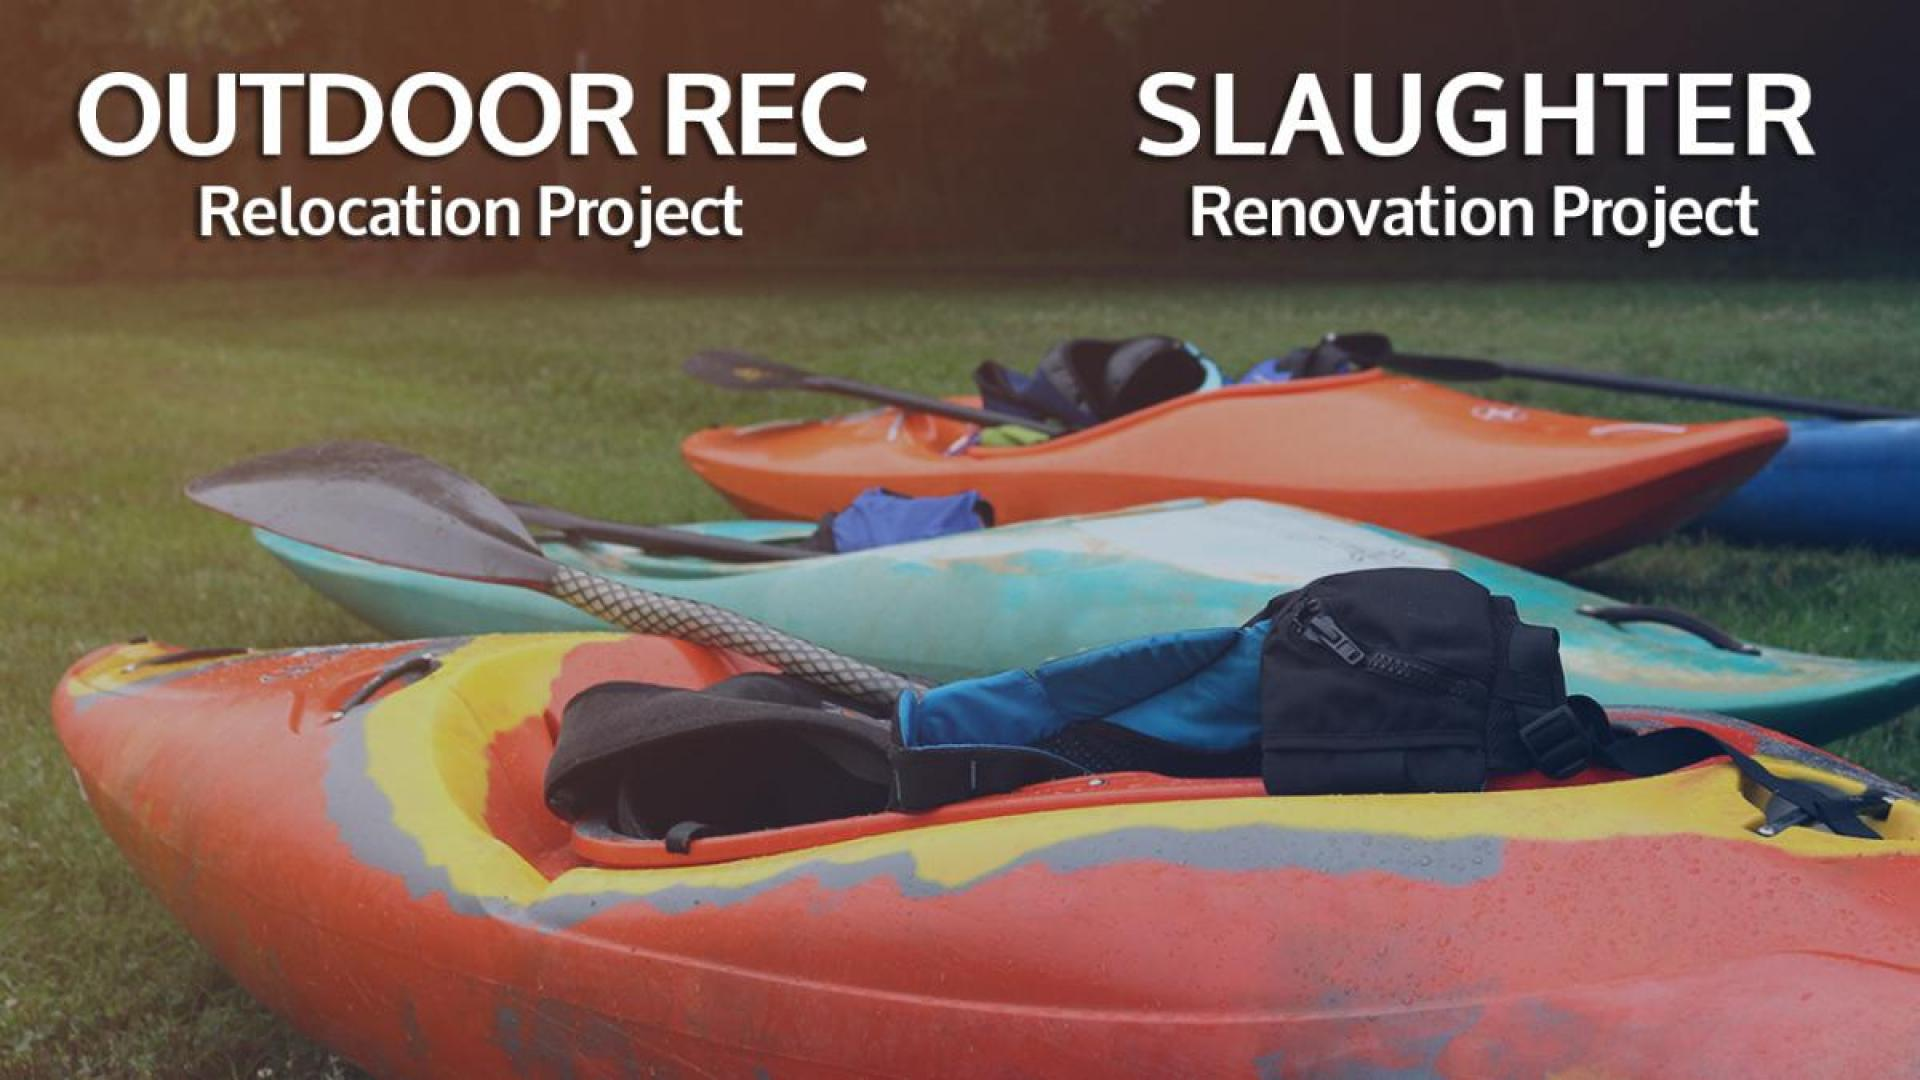 Slaughter Renovation and Outdoor Adventure Relocation